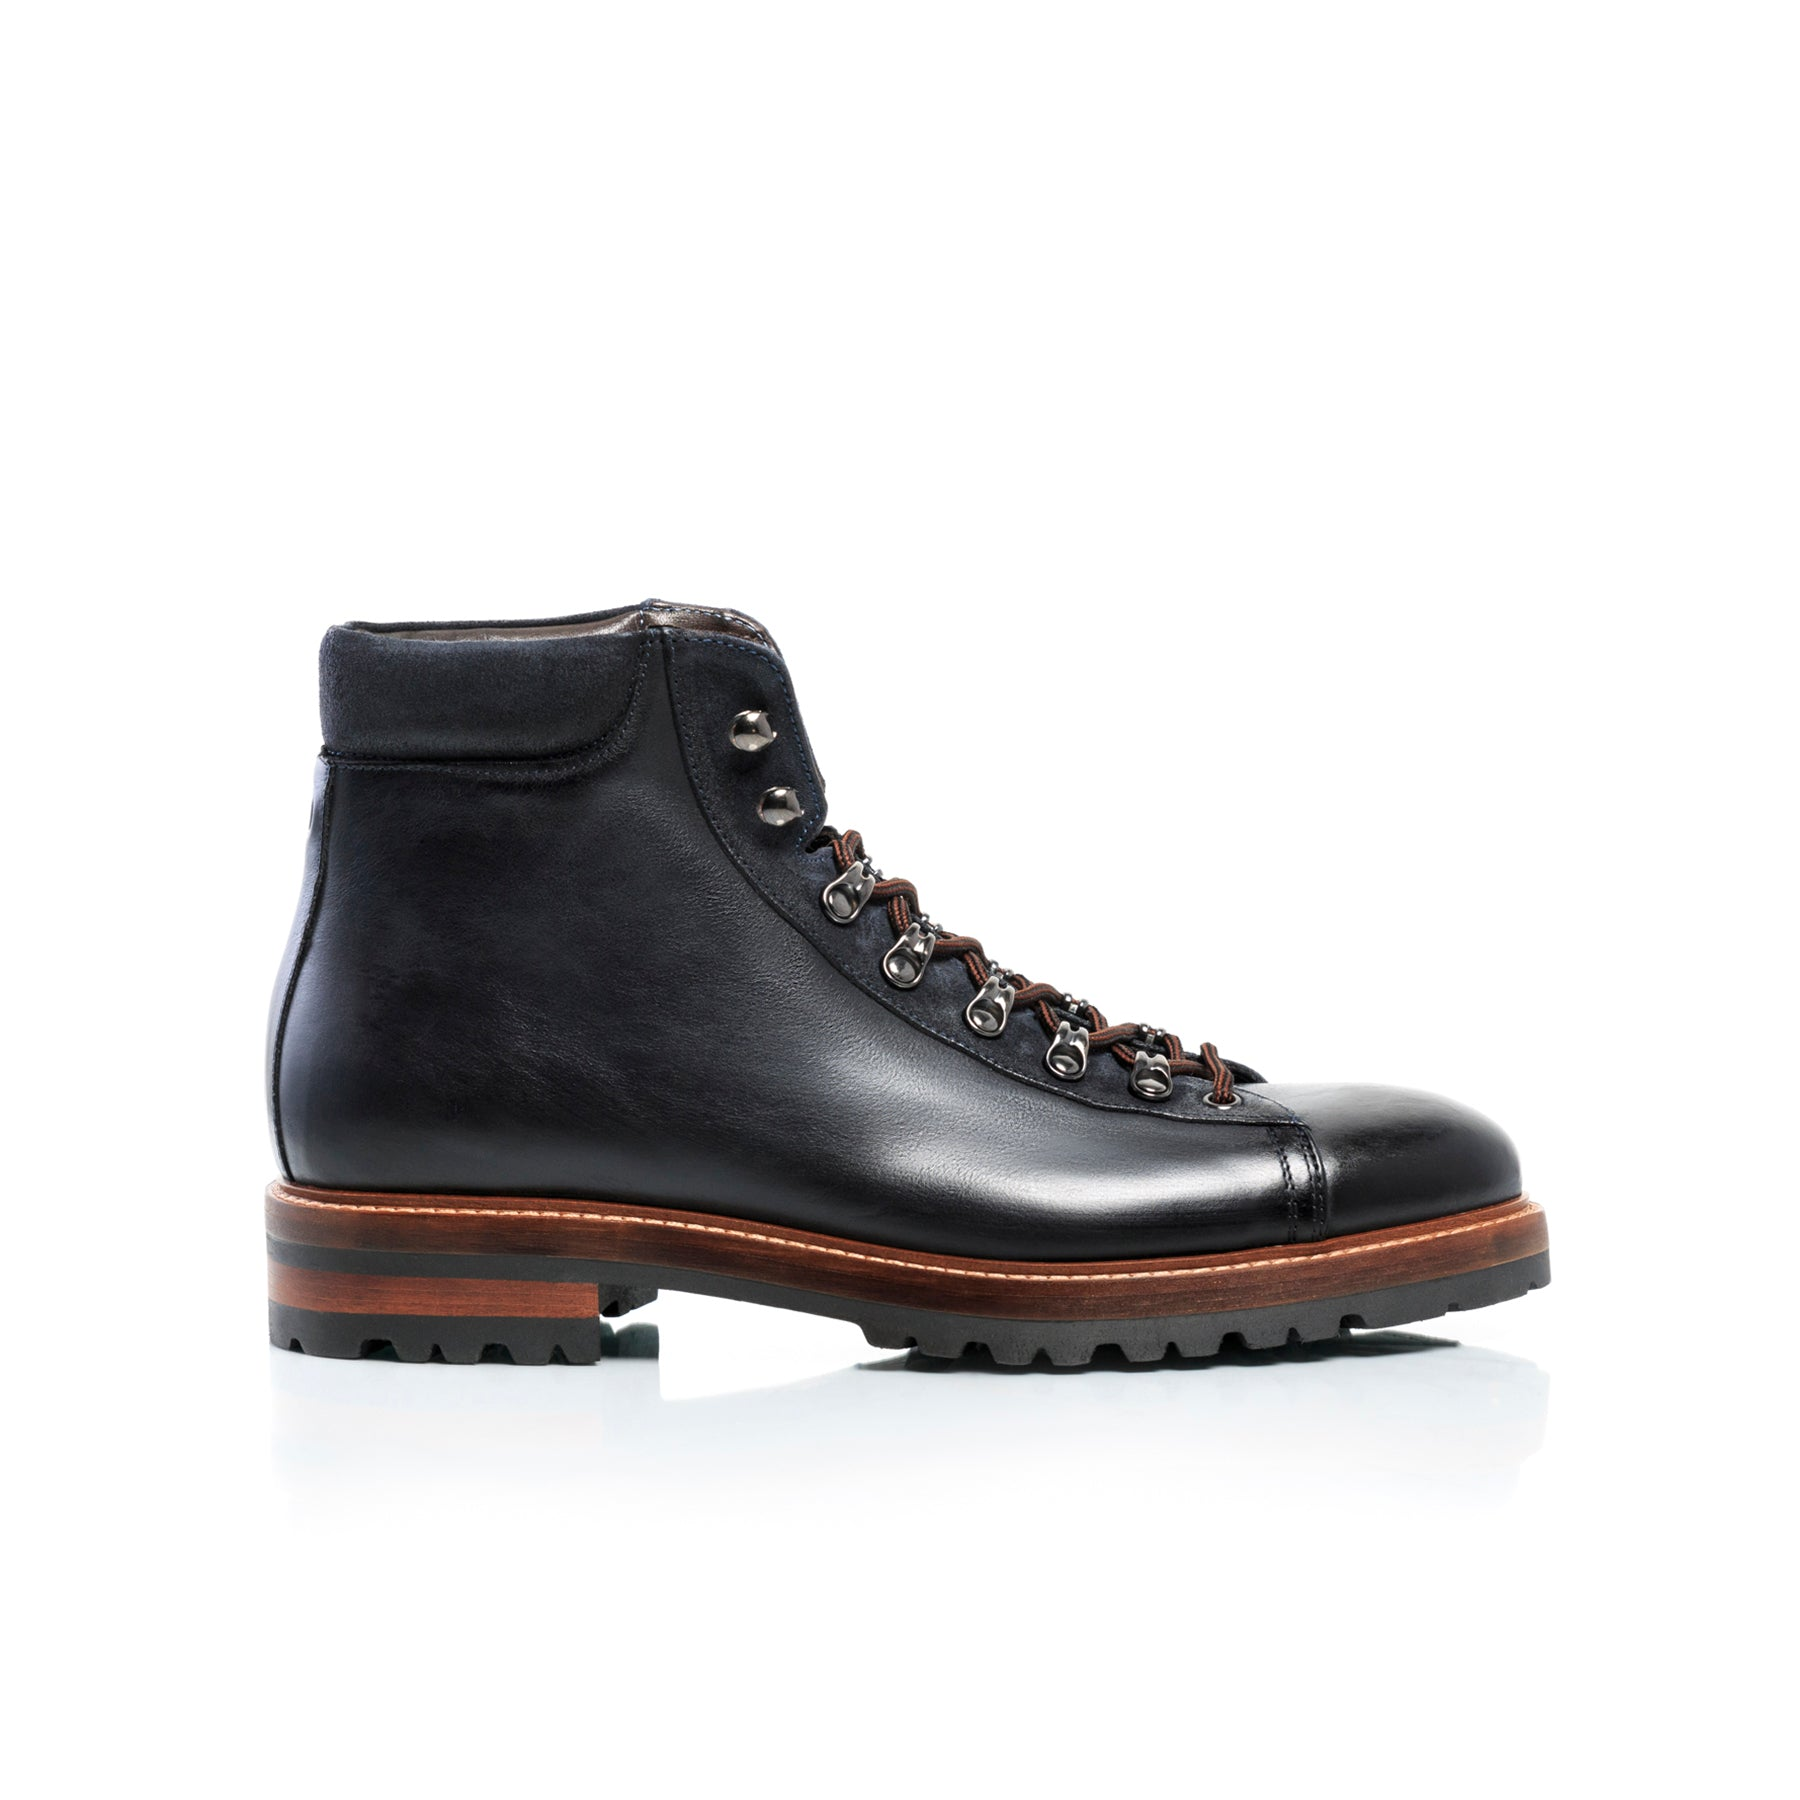 Stef Black Leather Boots - SOLD OUT